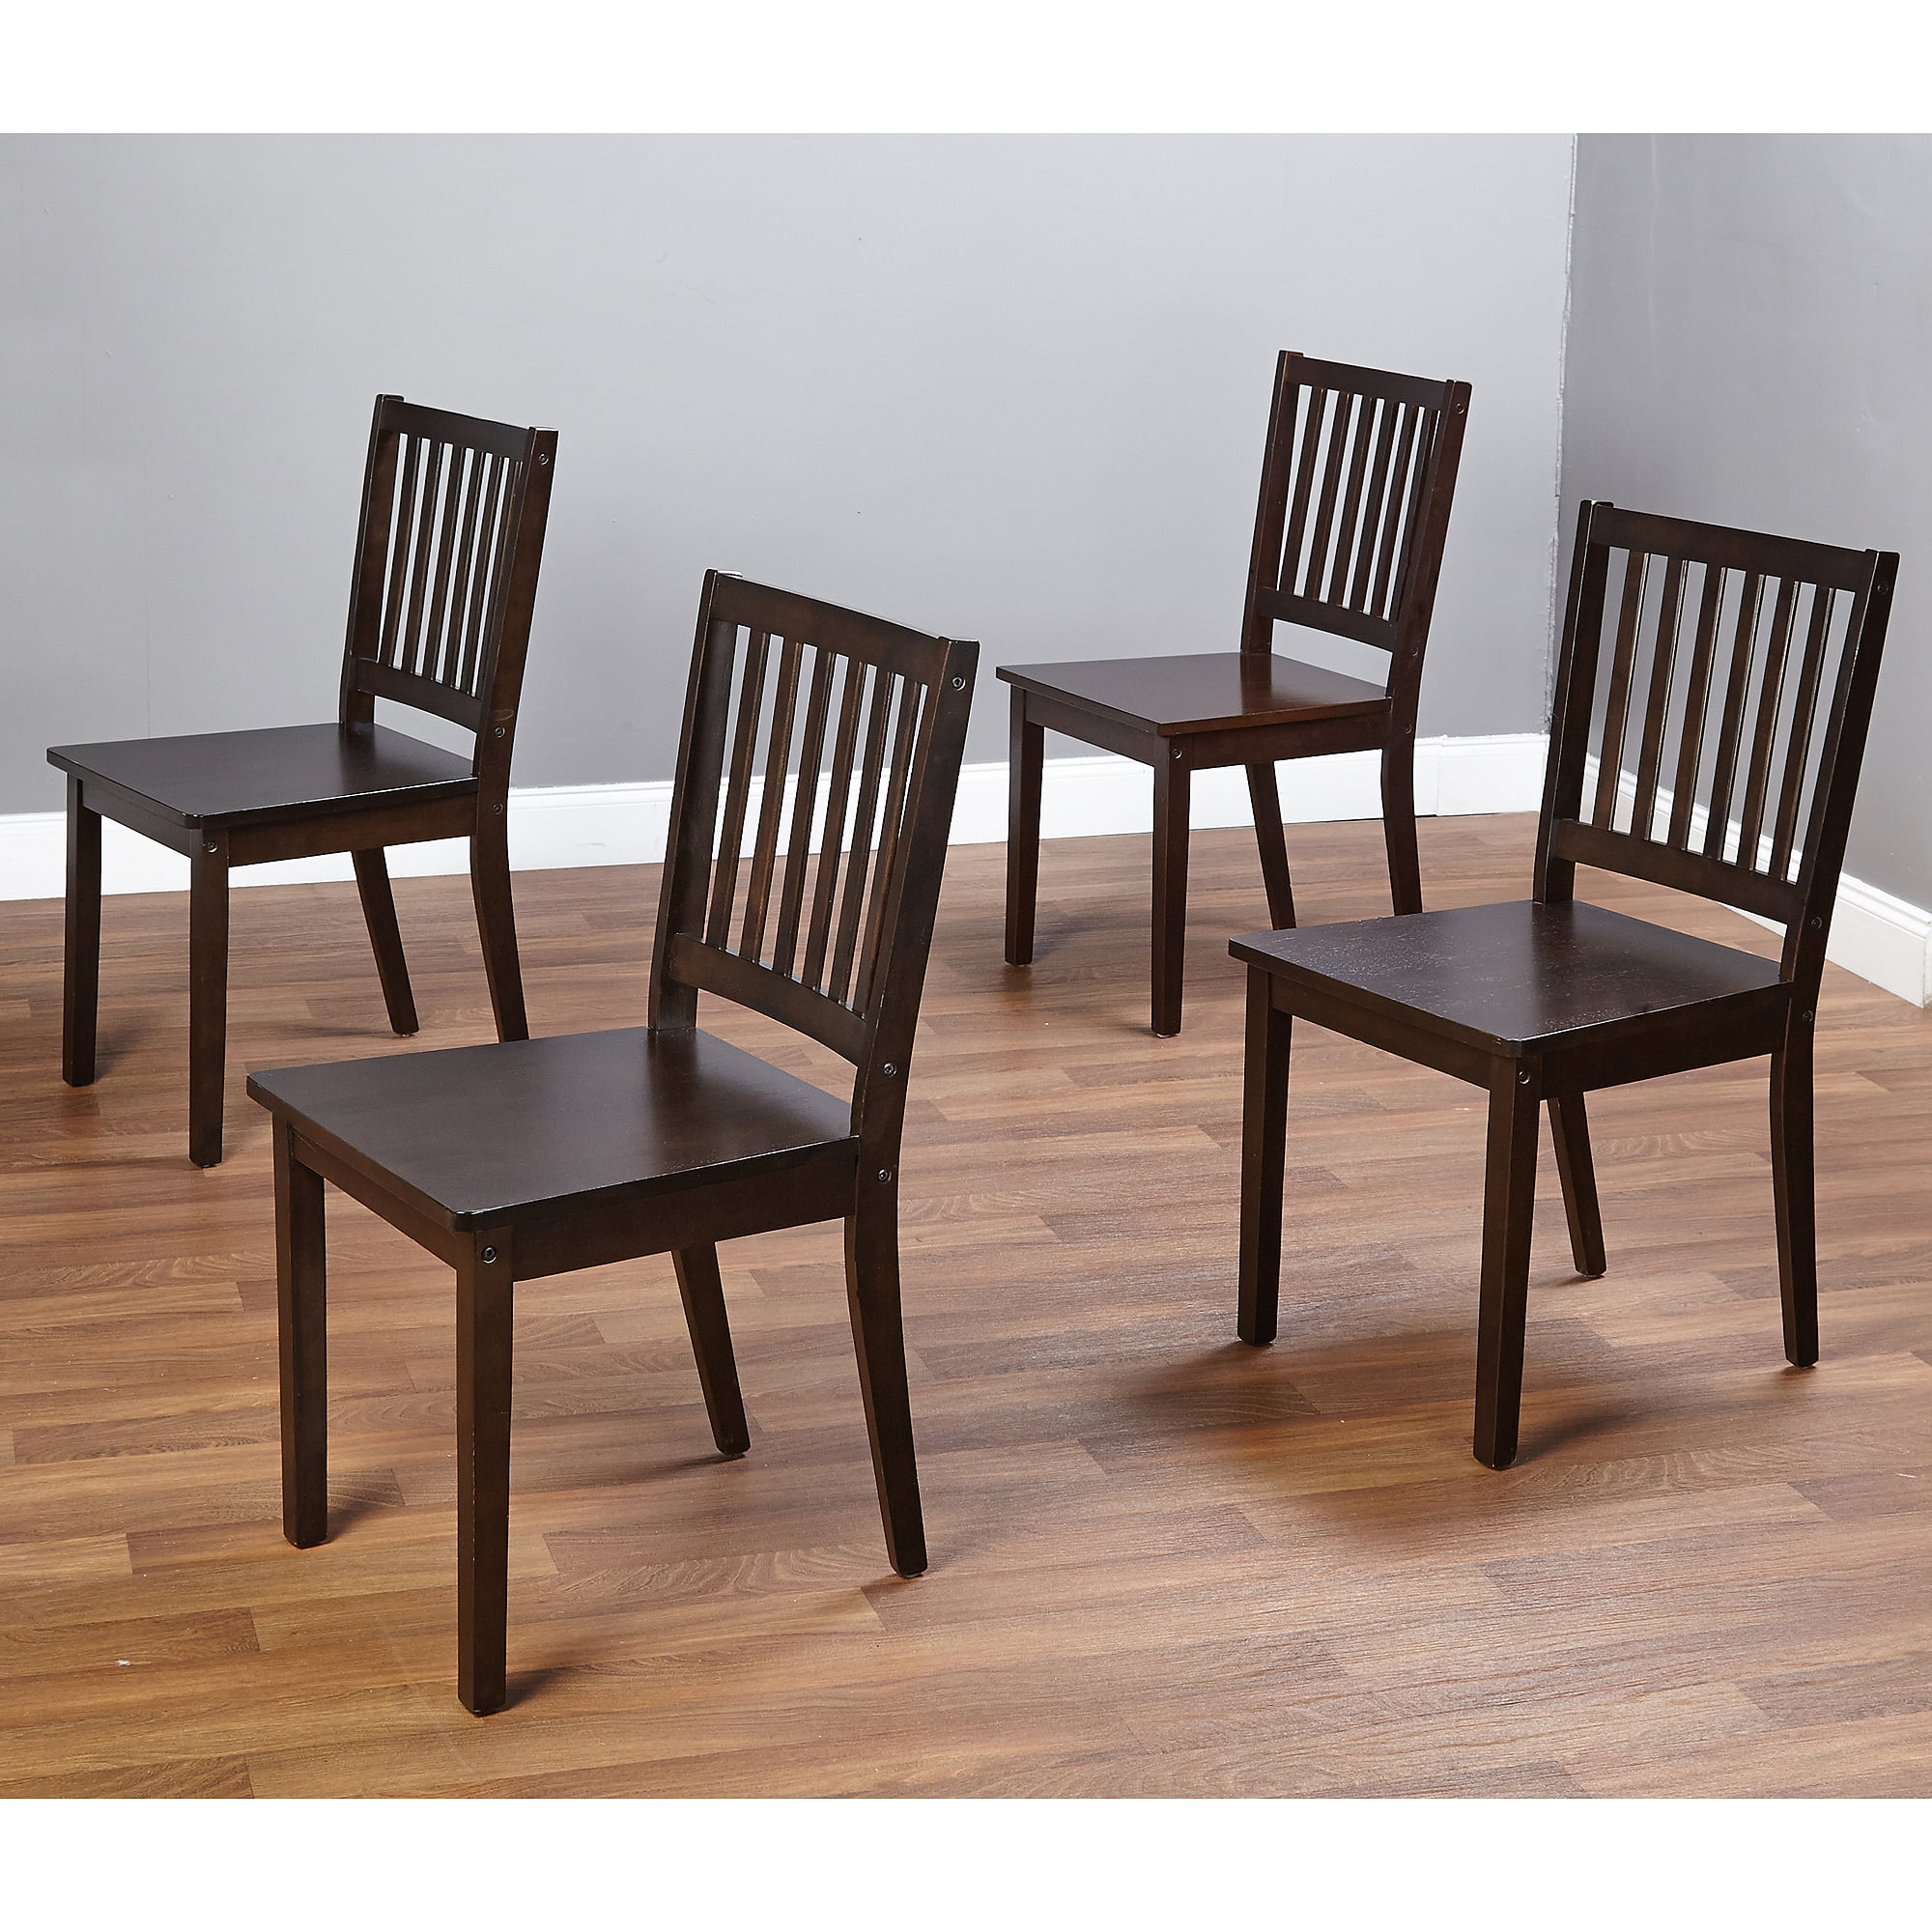 Shaker Dining Chairs, Set of 4, Espresso by n/a